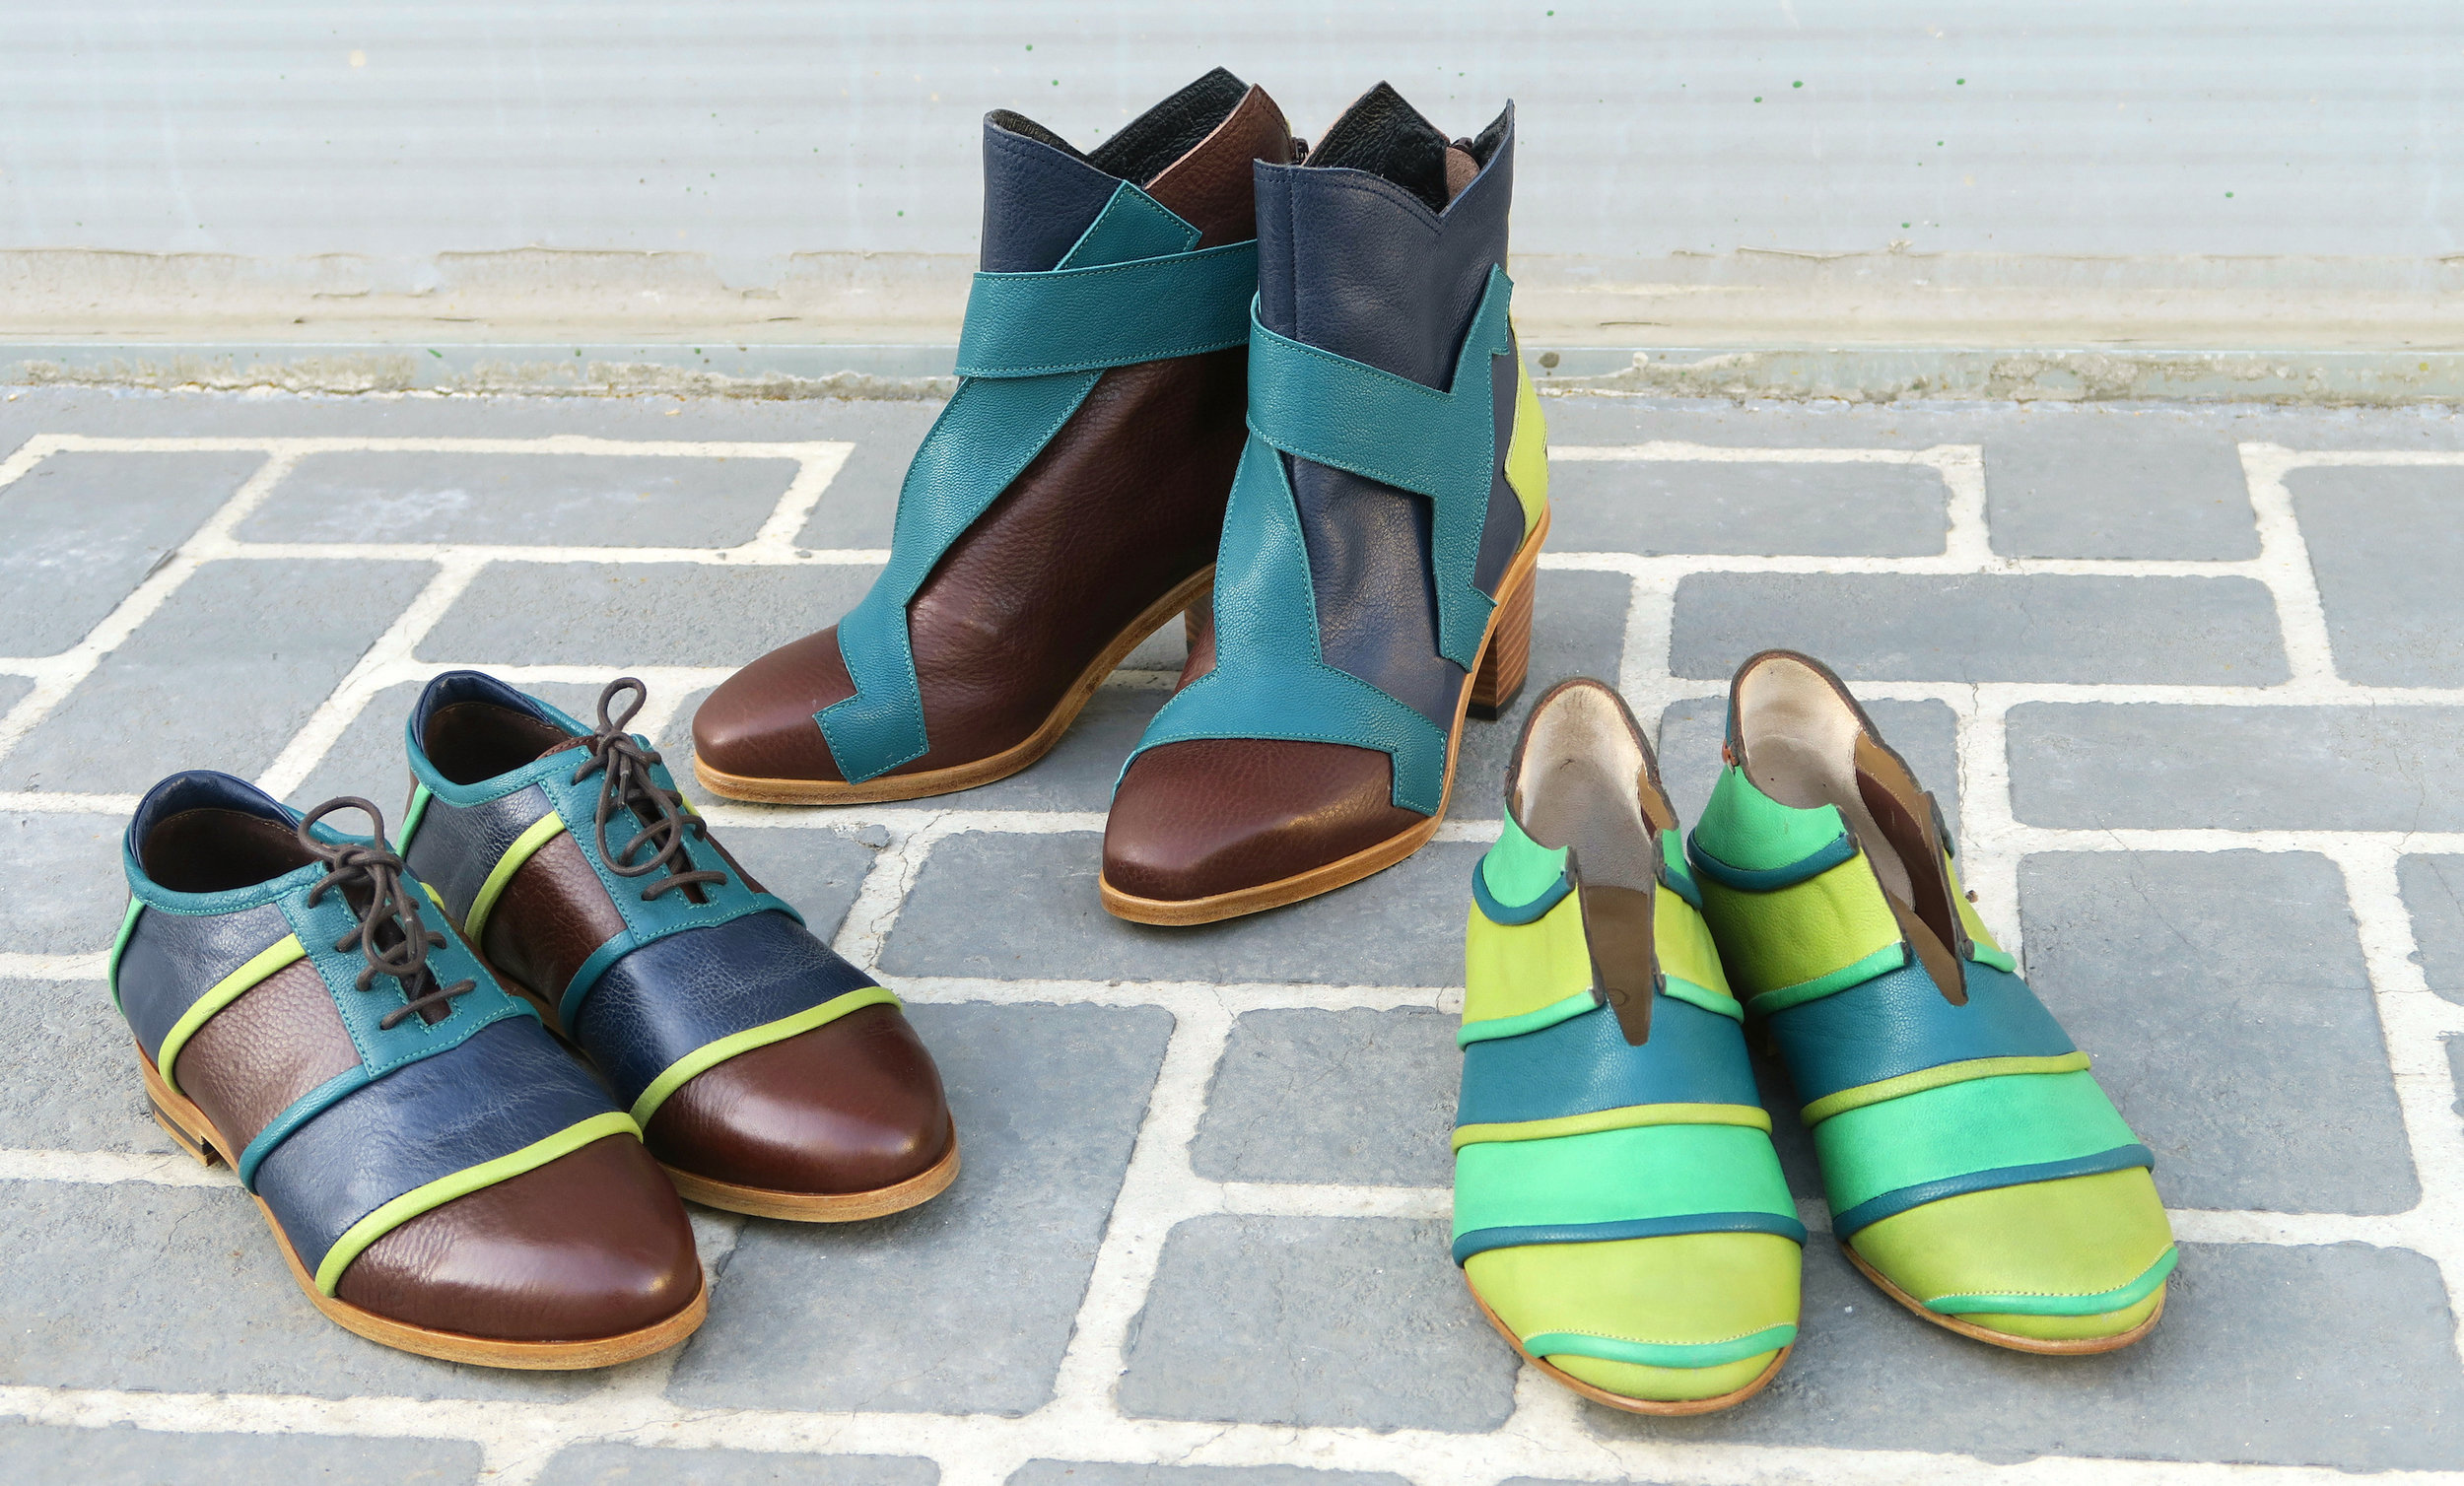 """L-R: Oxford """"City River,"""" Ankle Boot """"Bridge,"""" and Loafer """"Caterpillar"""" were designed by Gisela Insuaste and constructed by master craftsmen in Seongsu, Seoul."""